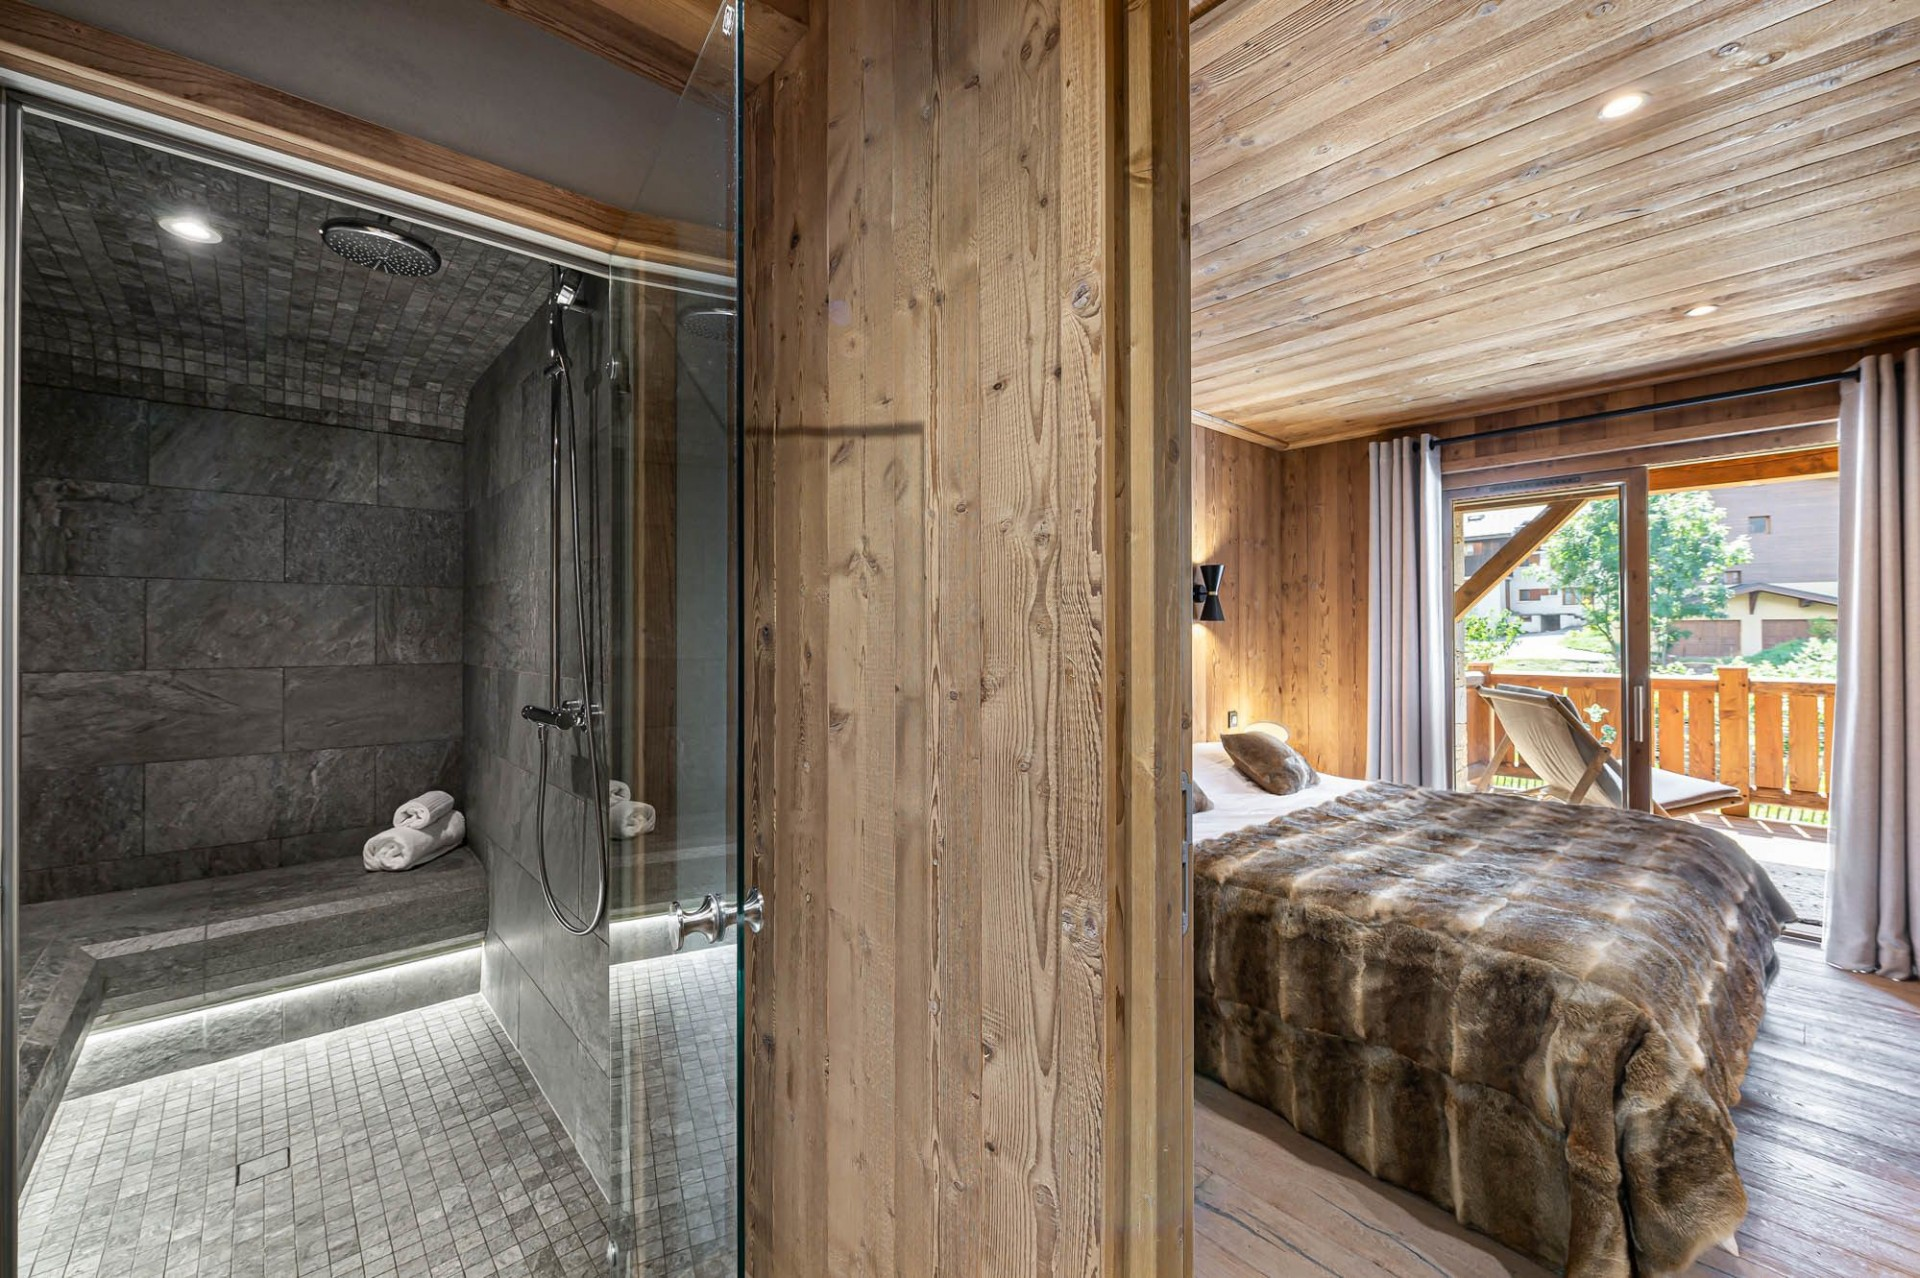 Courchevel 1300 Location Appartement Luxe Tilute Chambre